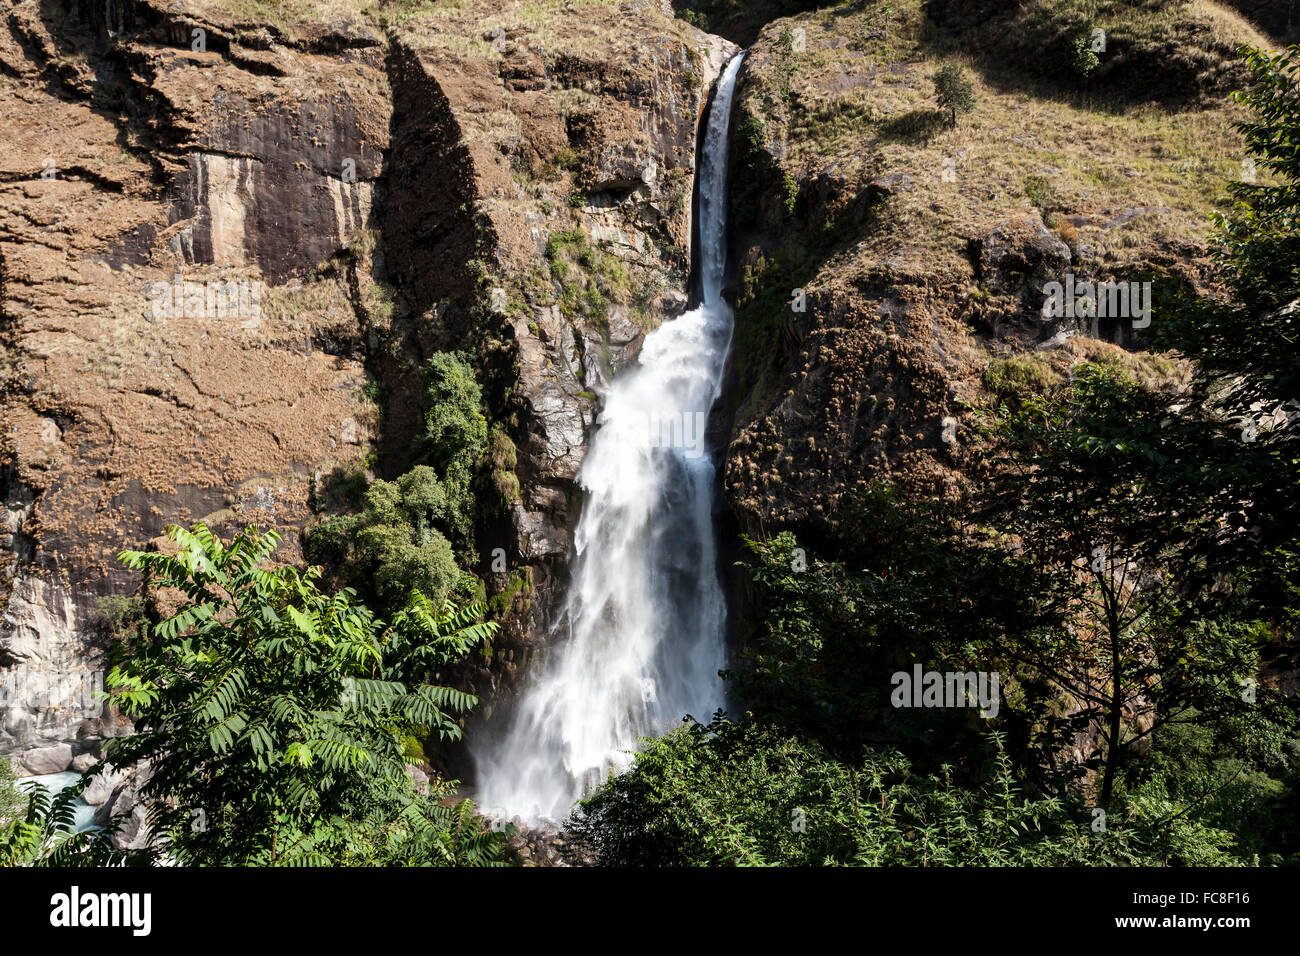 Waterfall in Nepal, Annapurna Conservation Area Stock Photo